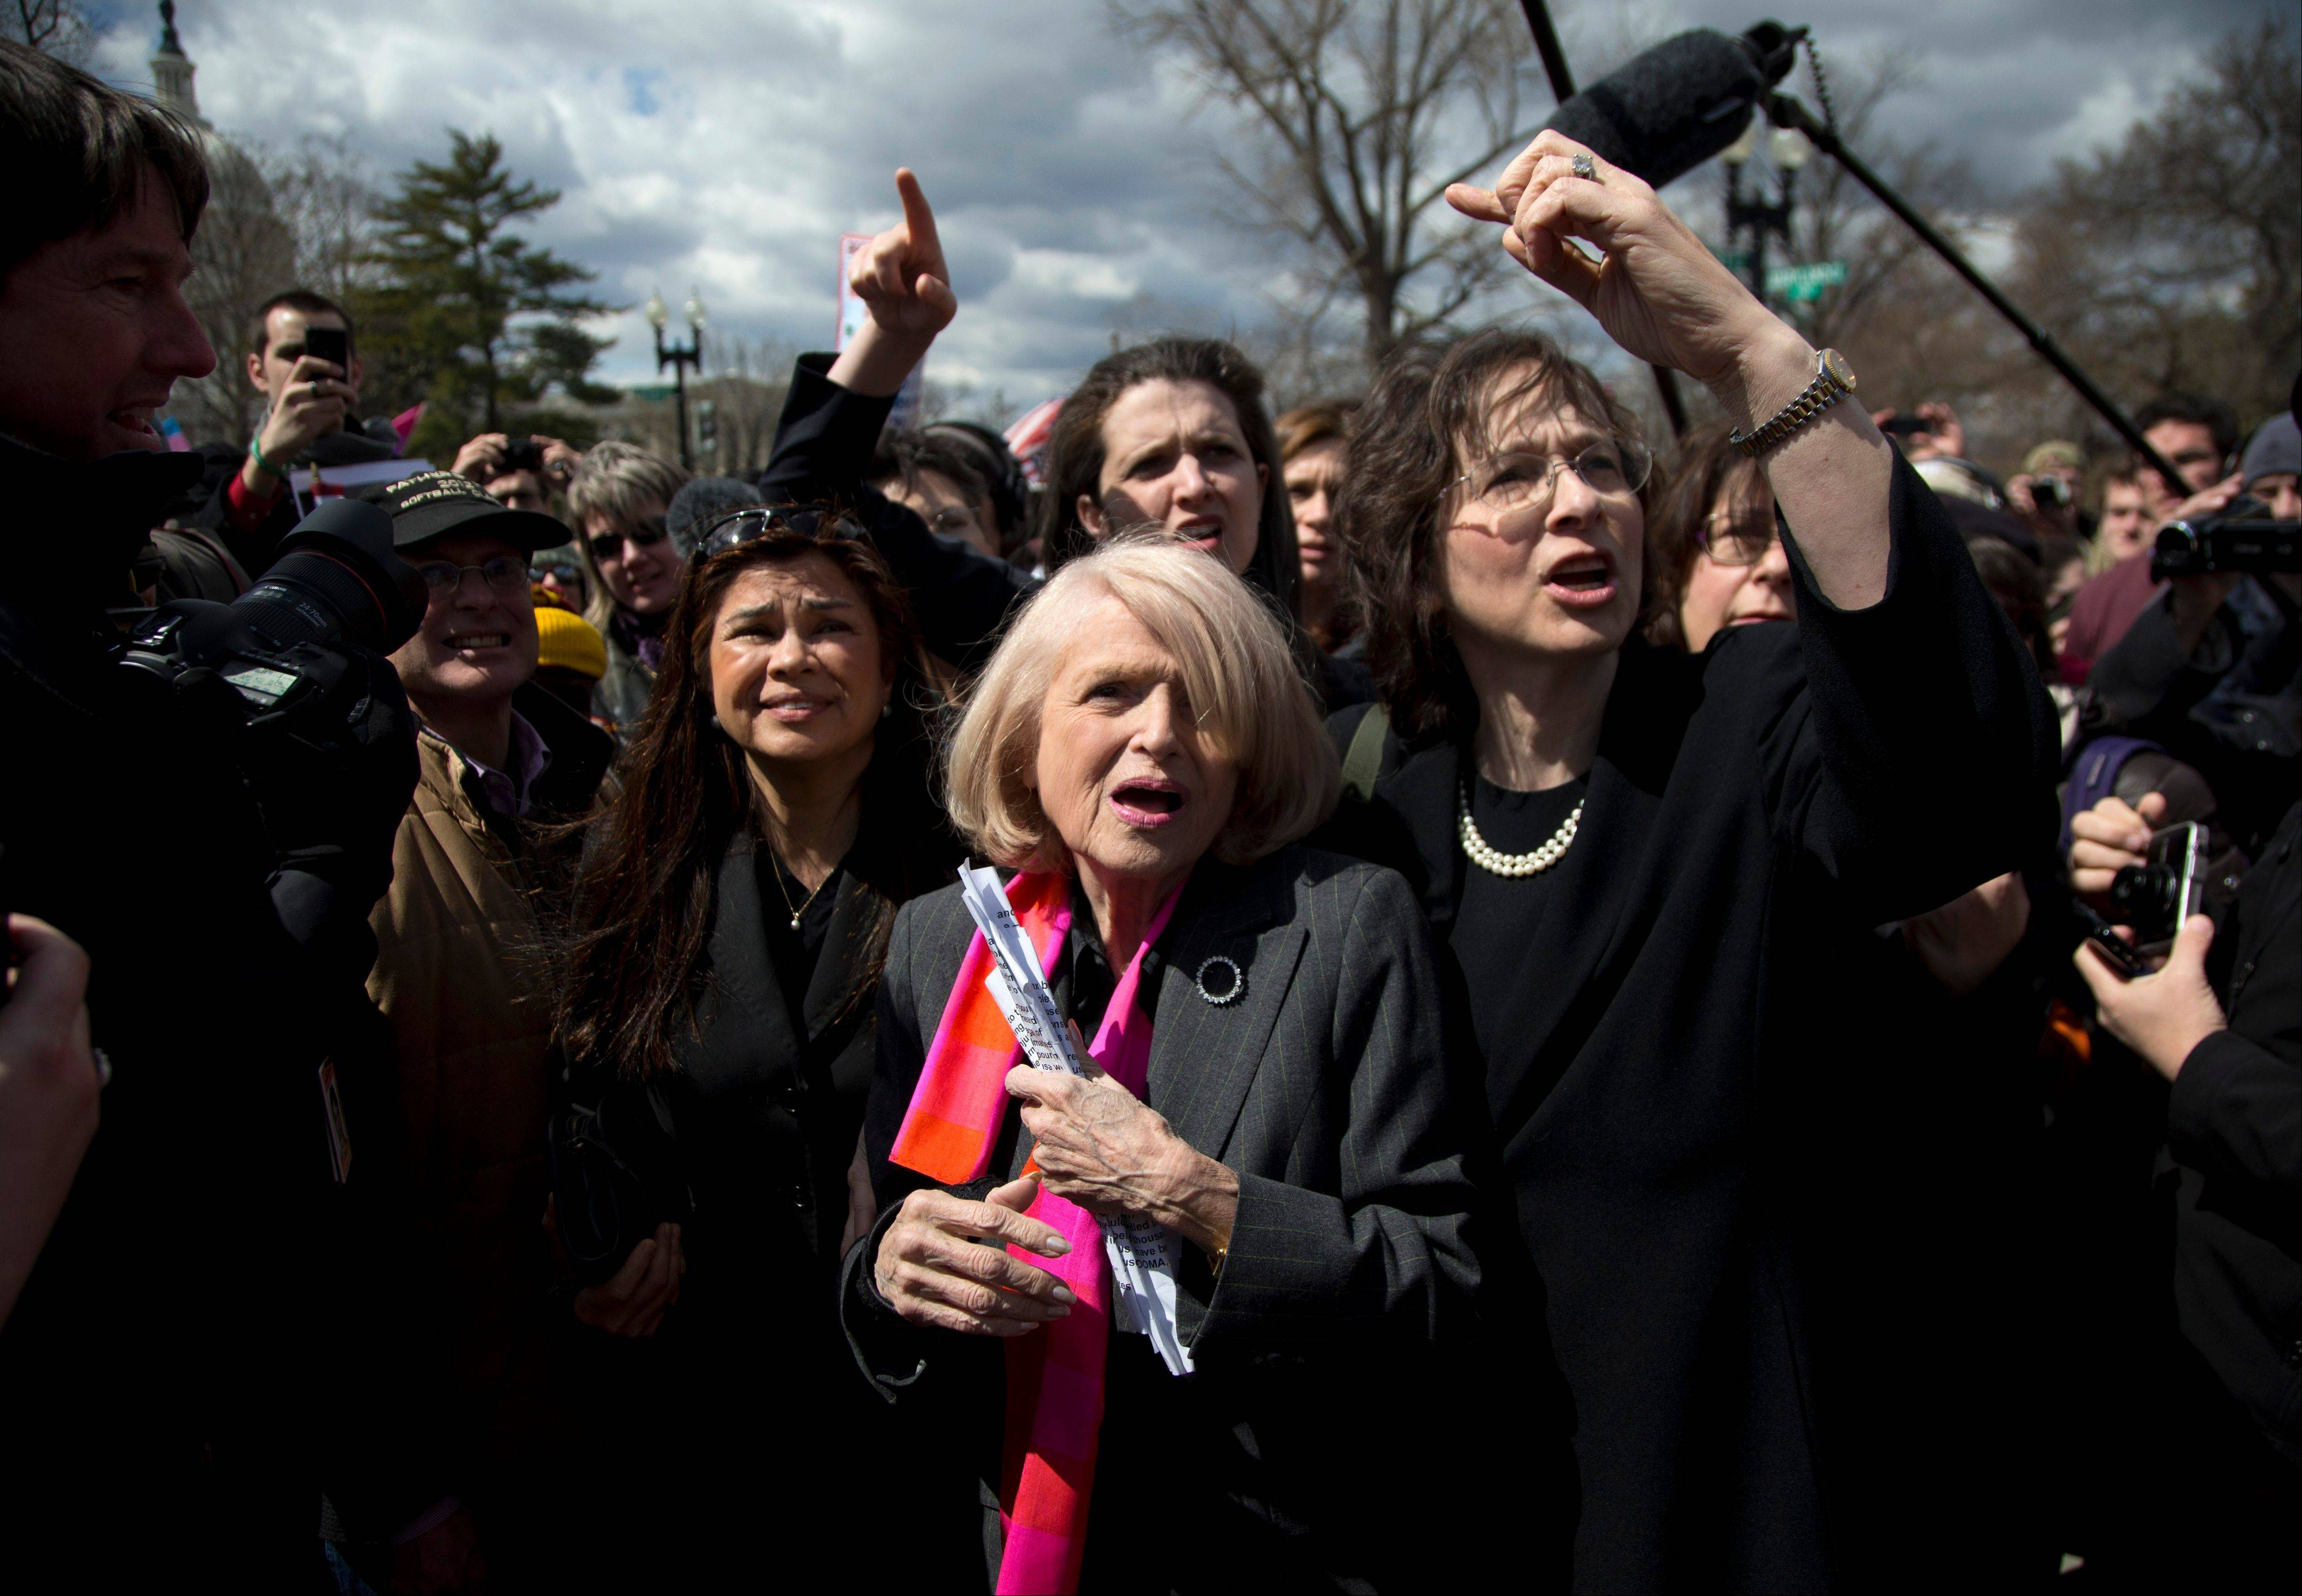 Plaintiff Edith Windsor of New York, center, tries to move through the crowd in front of the Supreme Court in Washington, Wednesday. The U.S. Supreme Court, in the second day of gay marriage cases, turned Wednesday to a constitutional challenge to the federal law that prevents legally married gay Americans from collecting federal benefits generally available to straight married couples.